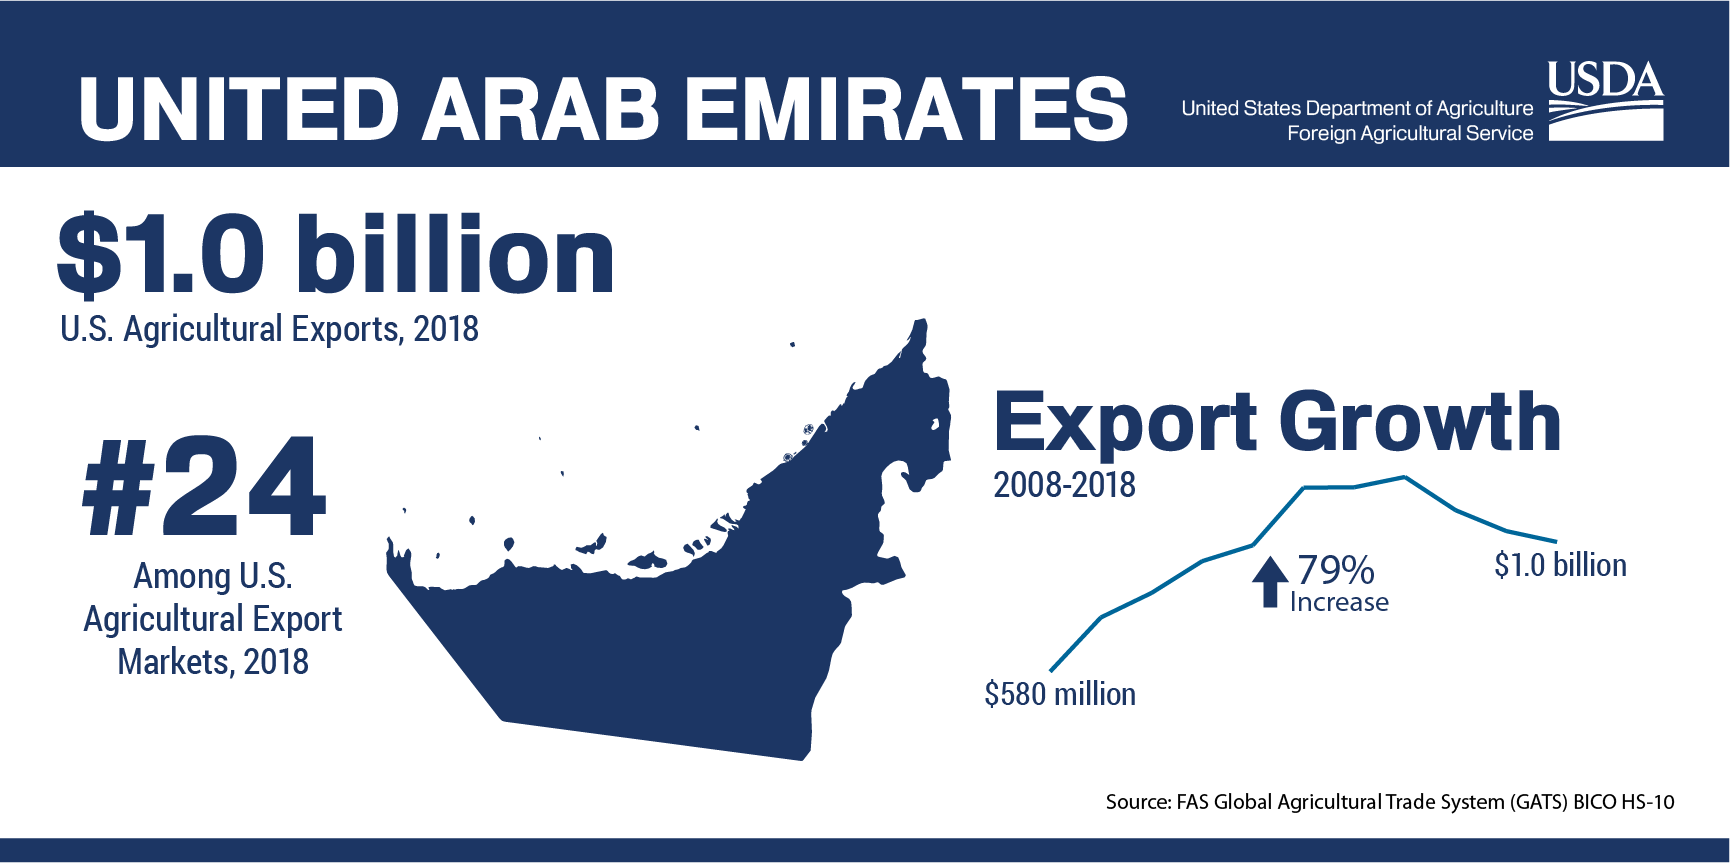 United Arab Emirates | USDA Foreign Agricultural Service